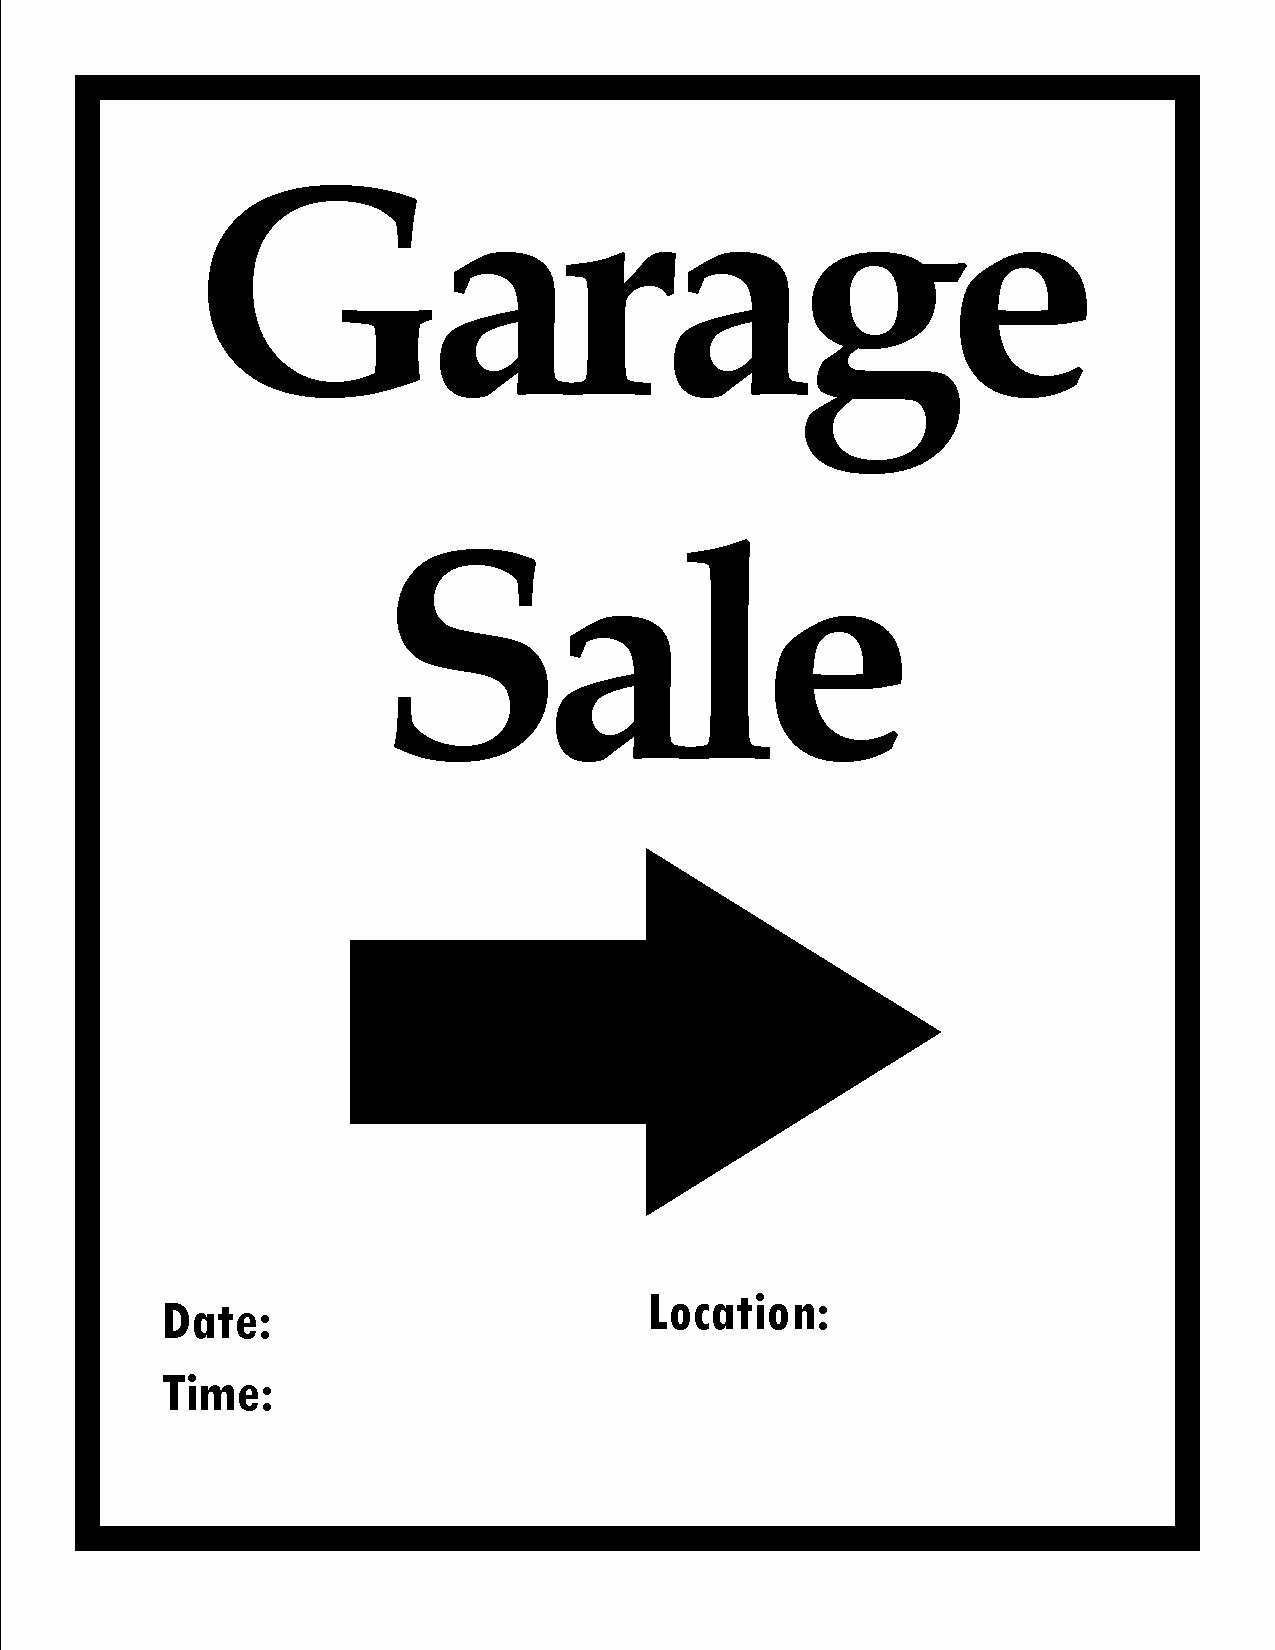 Garage Sale Flyer Template Free Elegant Printable Items to organize Your Next Move